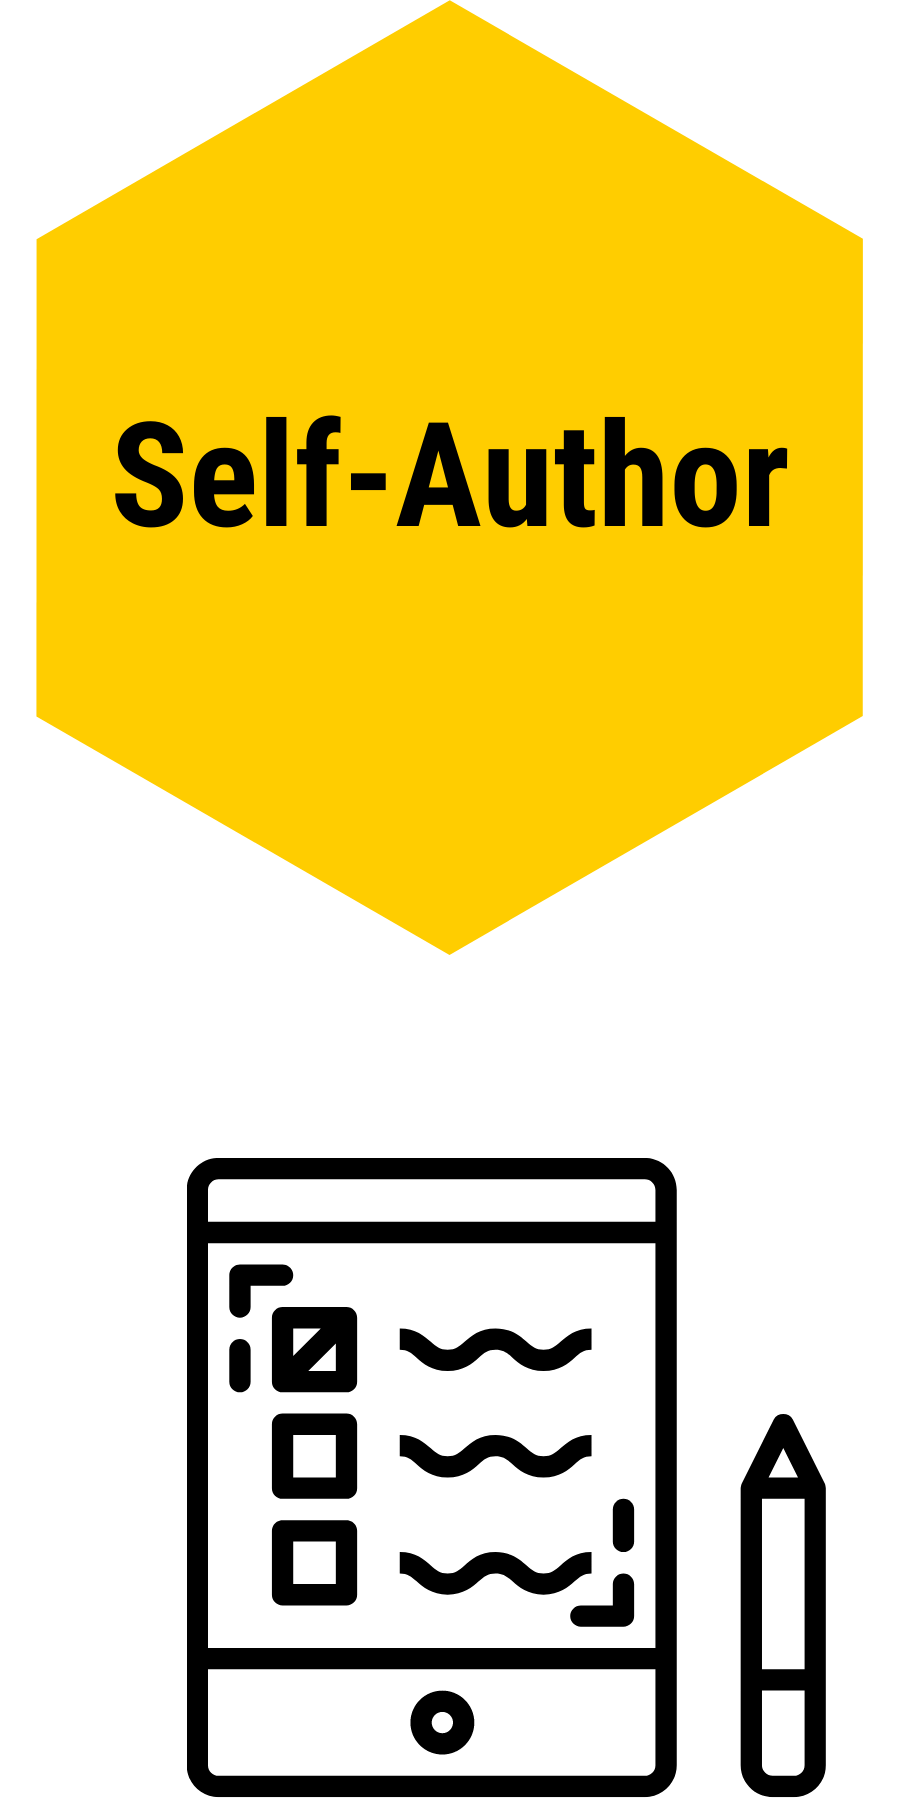 Self-Author Lessons Learned to Transform Organizational Training